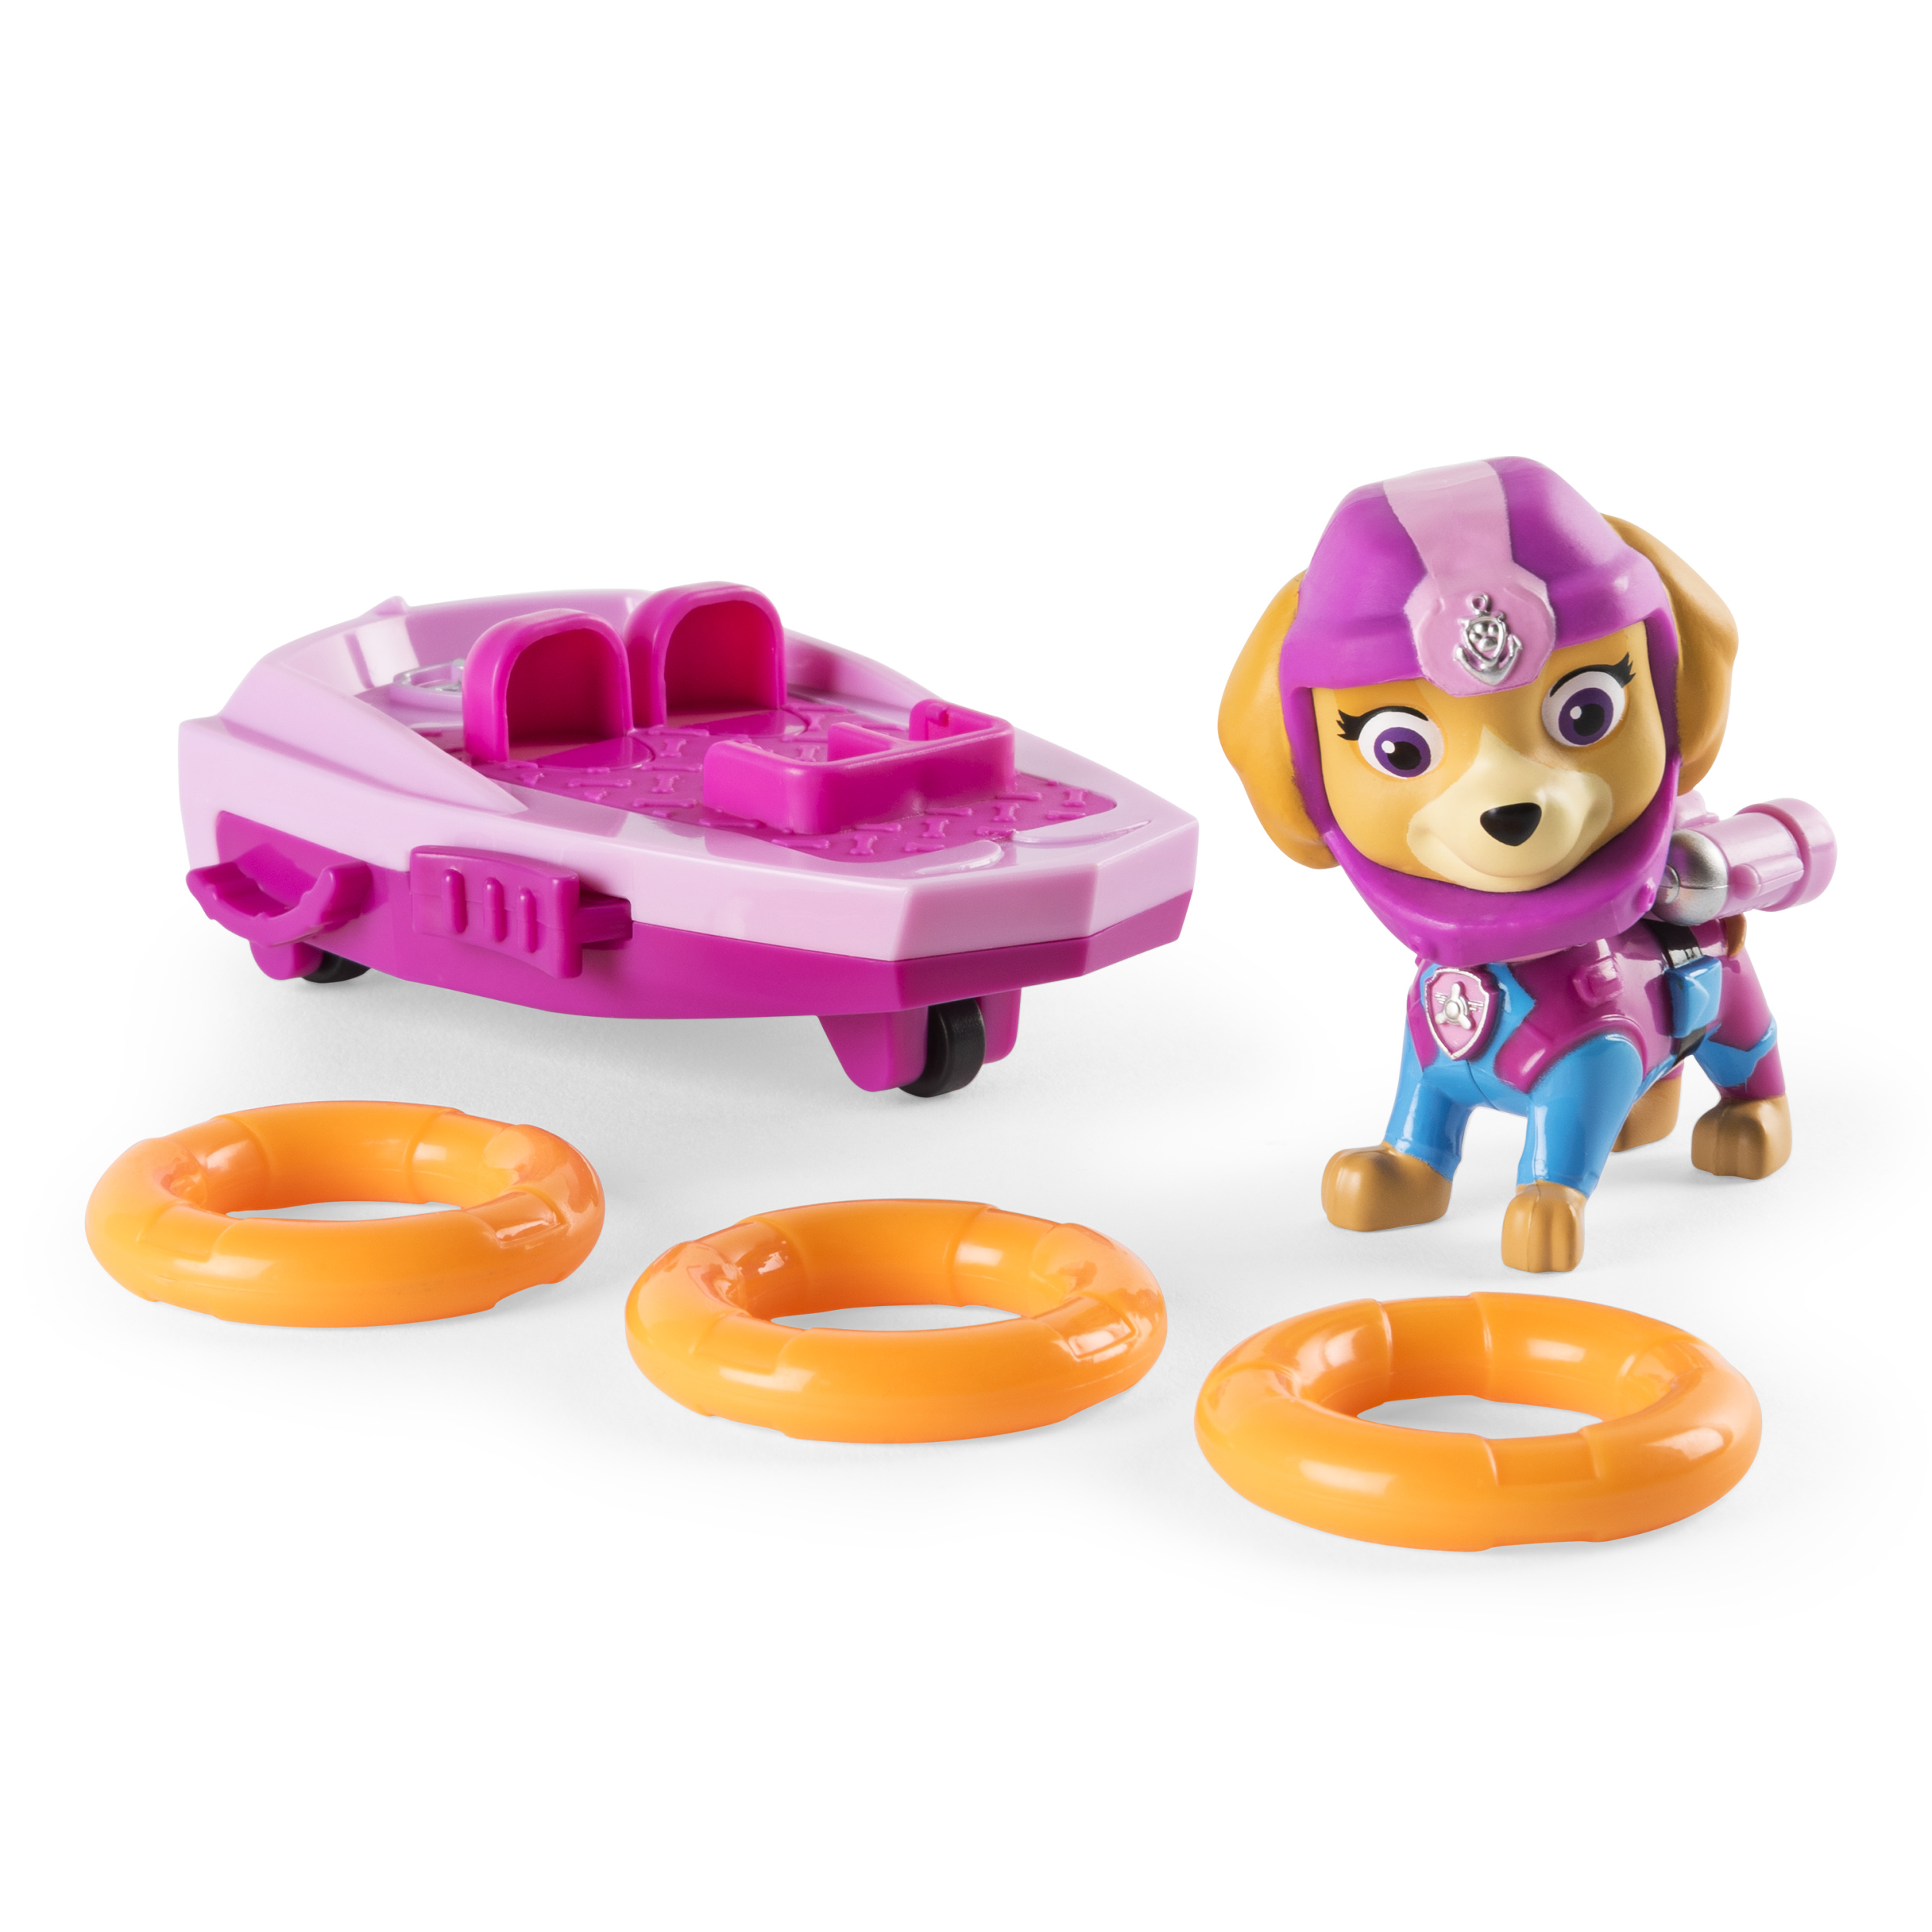 <p>Paw Patrol – Skye's Launching Surfboard</p>